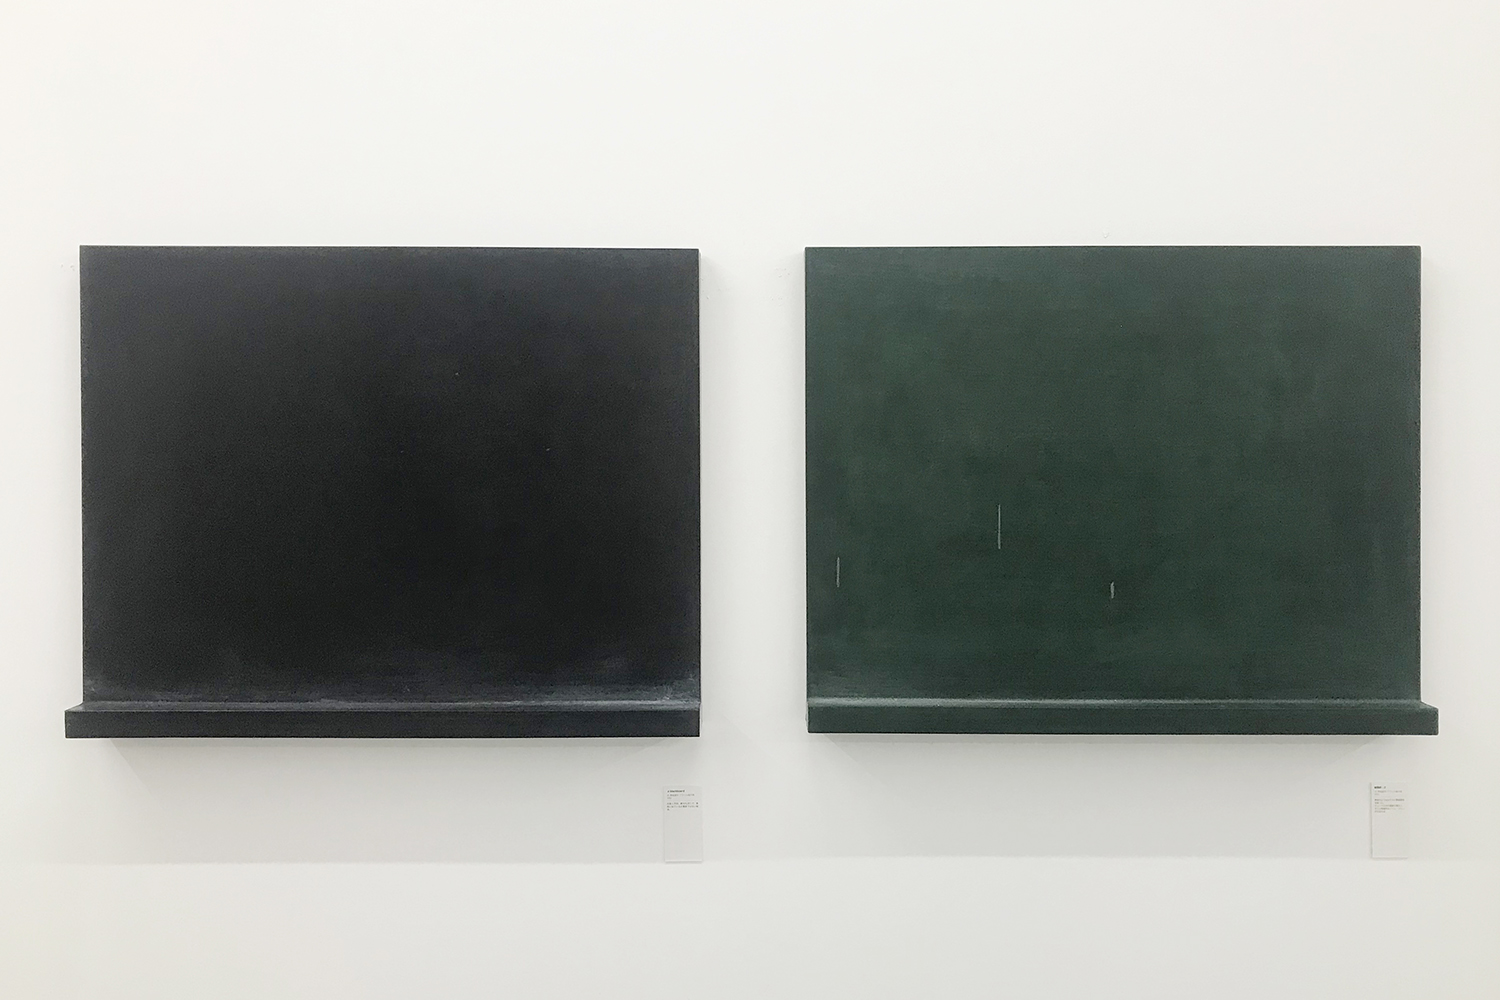 (left) a blackboard|Acrylic, blackboard paint on wood|620 x 800 x 83 mm|2002<br>(right) Pictorial・Z|Acrylic, blackboard paint on wood|620 x 800 x 83 mm|2002<br>¥220,000-400,000 each